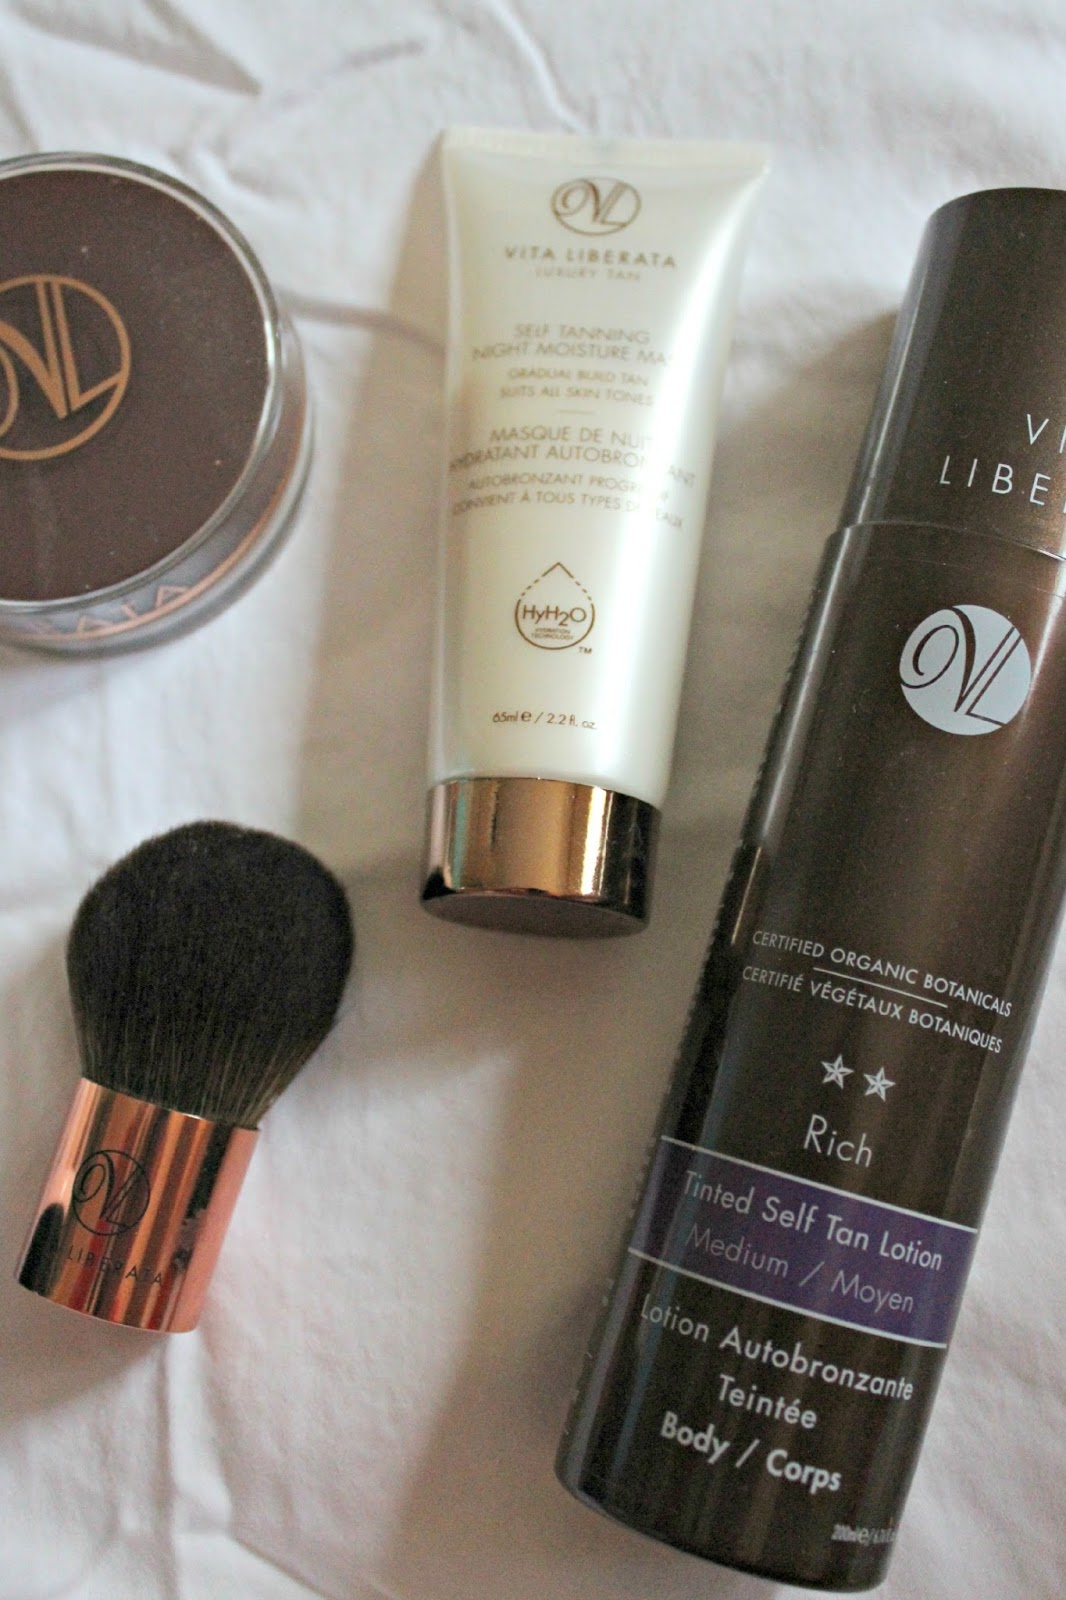 vita liberata rich tinted self tan lotion